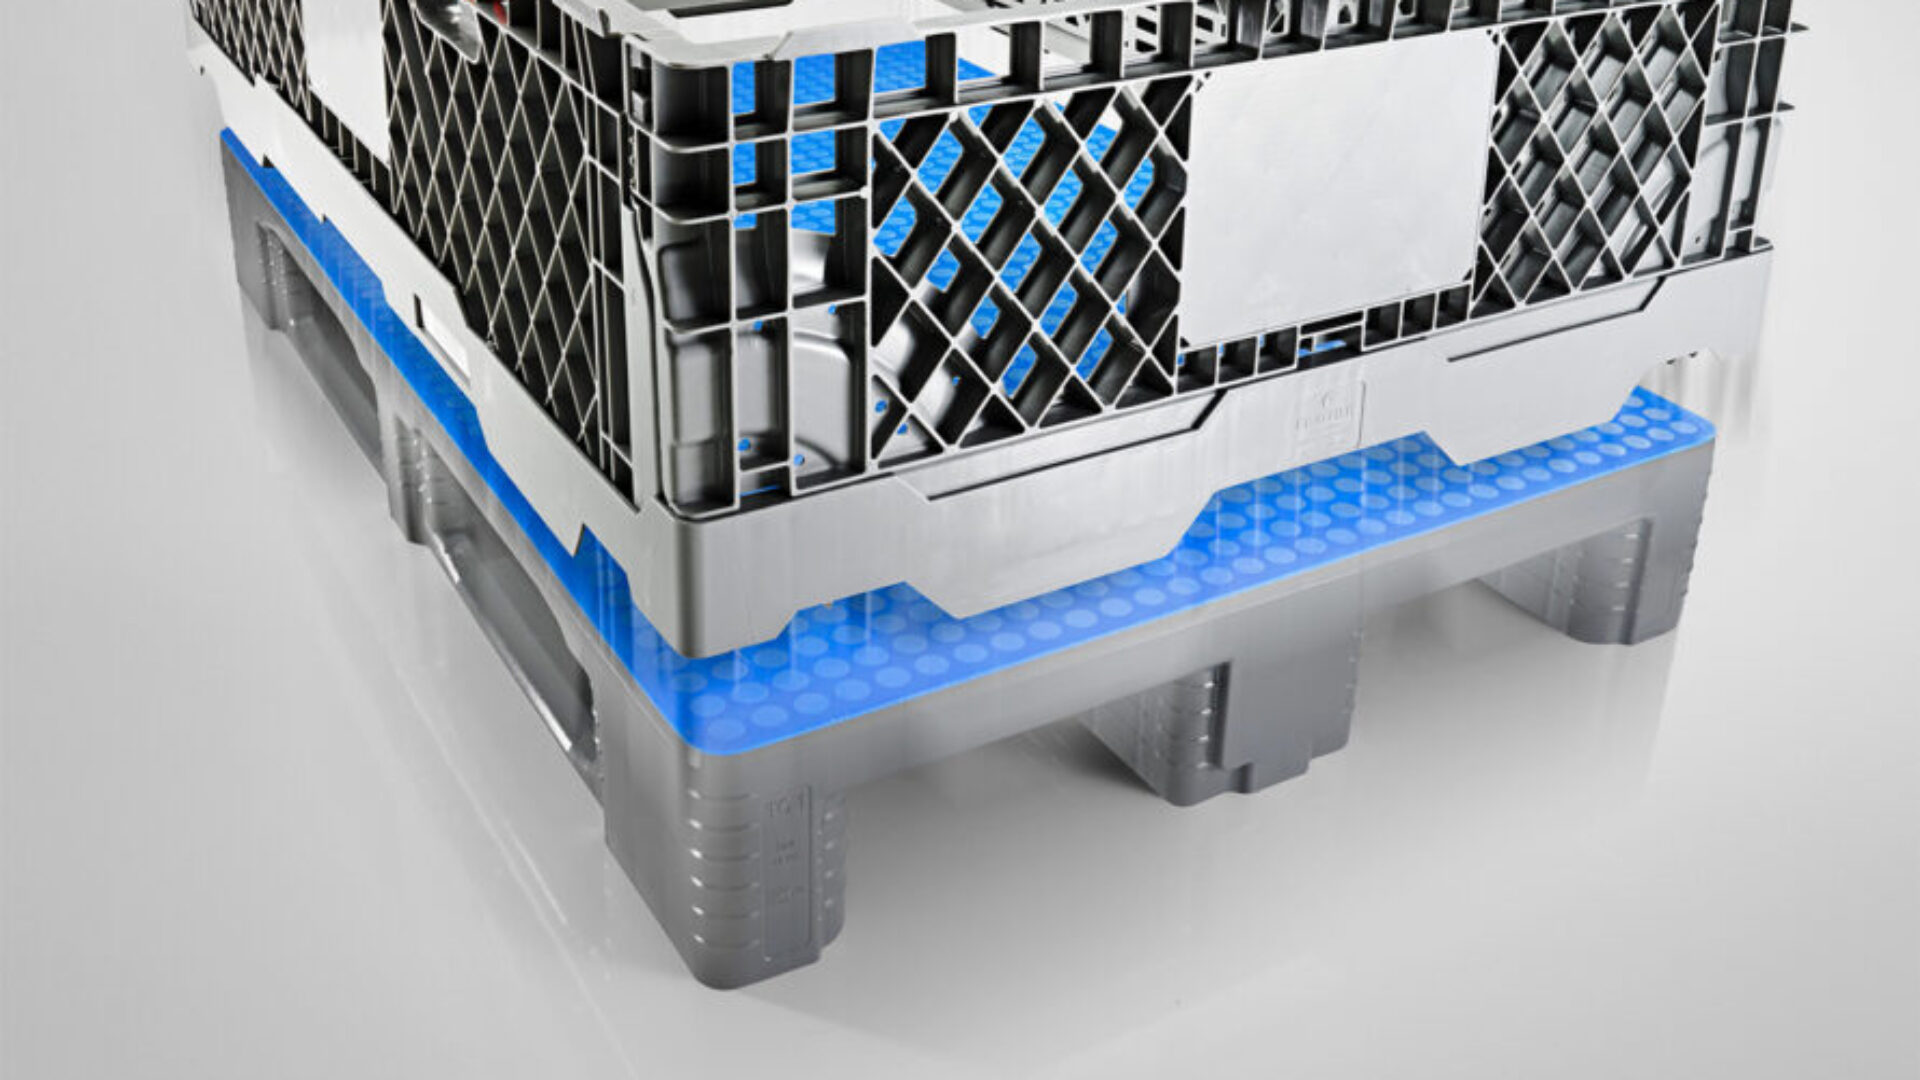 The CC1 collar from Craemer is compatible with wooden and plastic Euro pallets